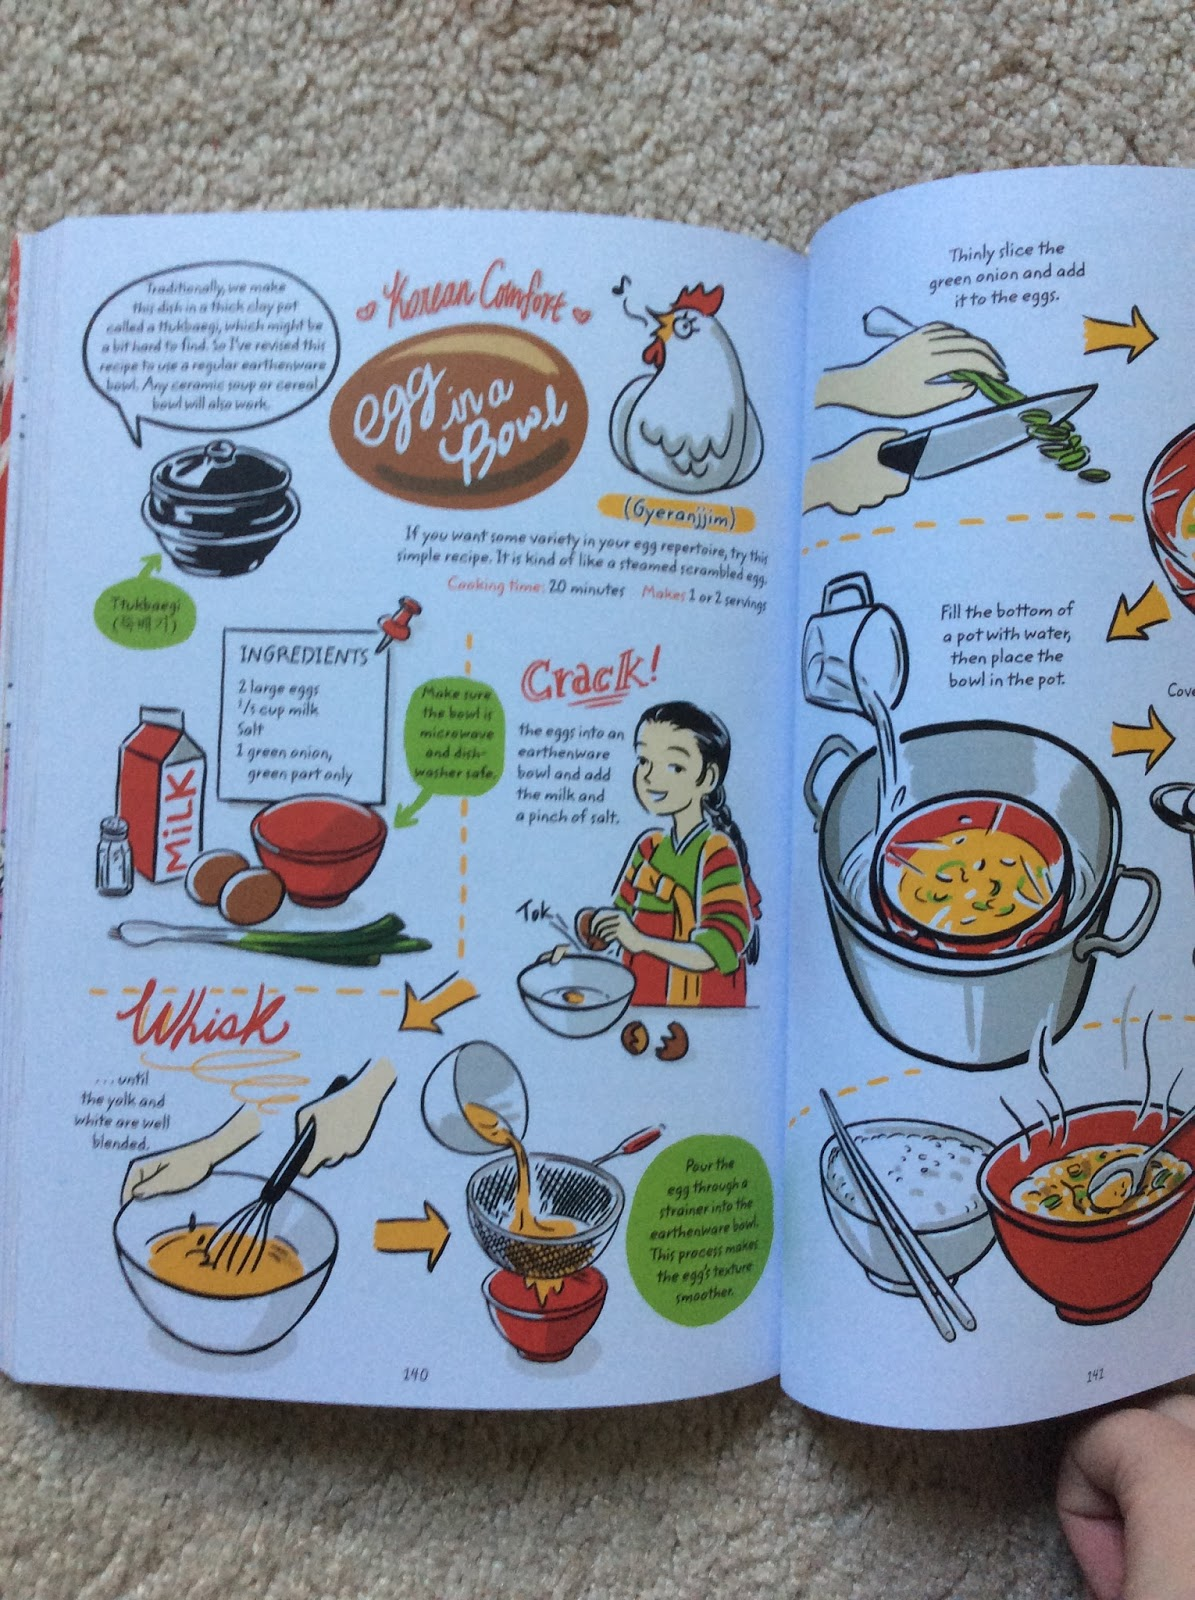 Nescas nook cook korean a comic book recipe book by robin ha for purchase here httpsamazoncook korean comic book recipes dp1607748878refsr11ieutf8qid1470333766sr8 1keywordscookkorean forumfinder Image collections